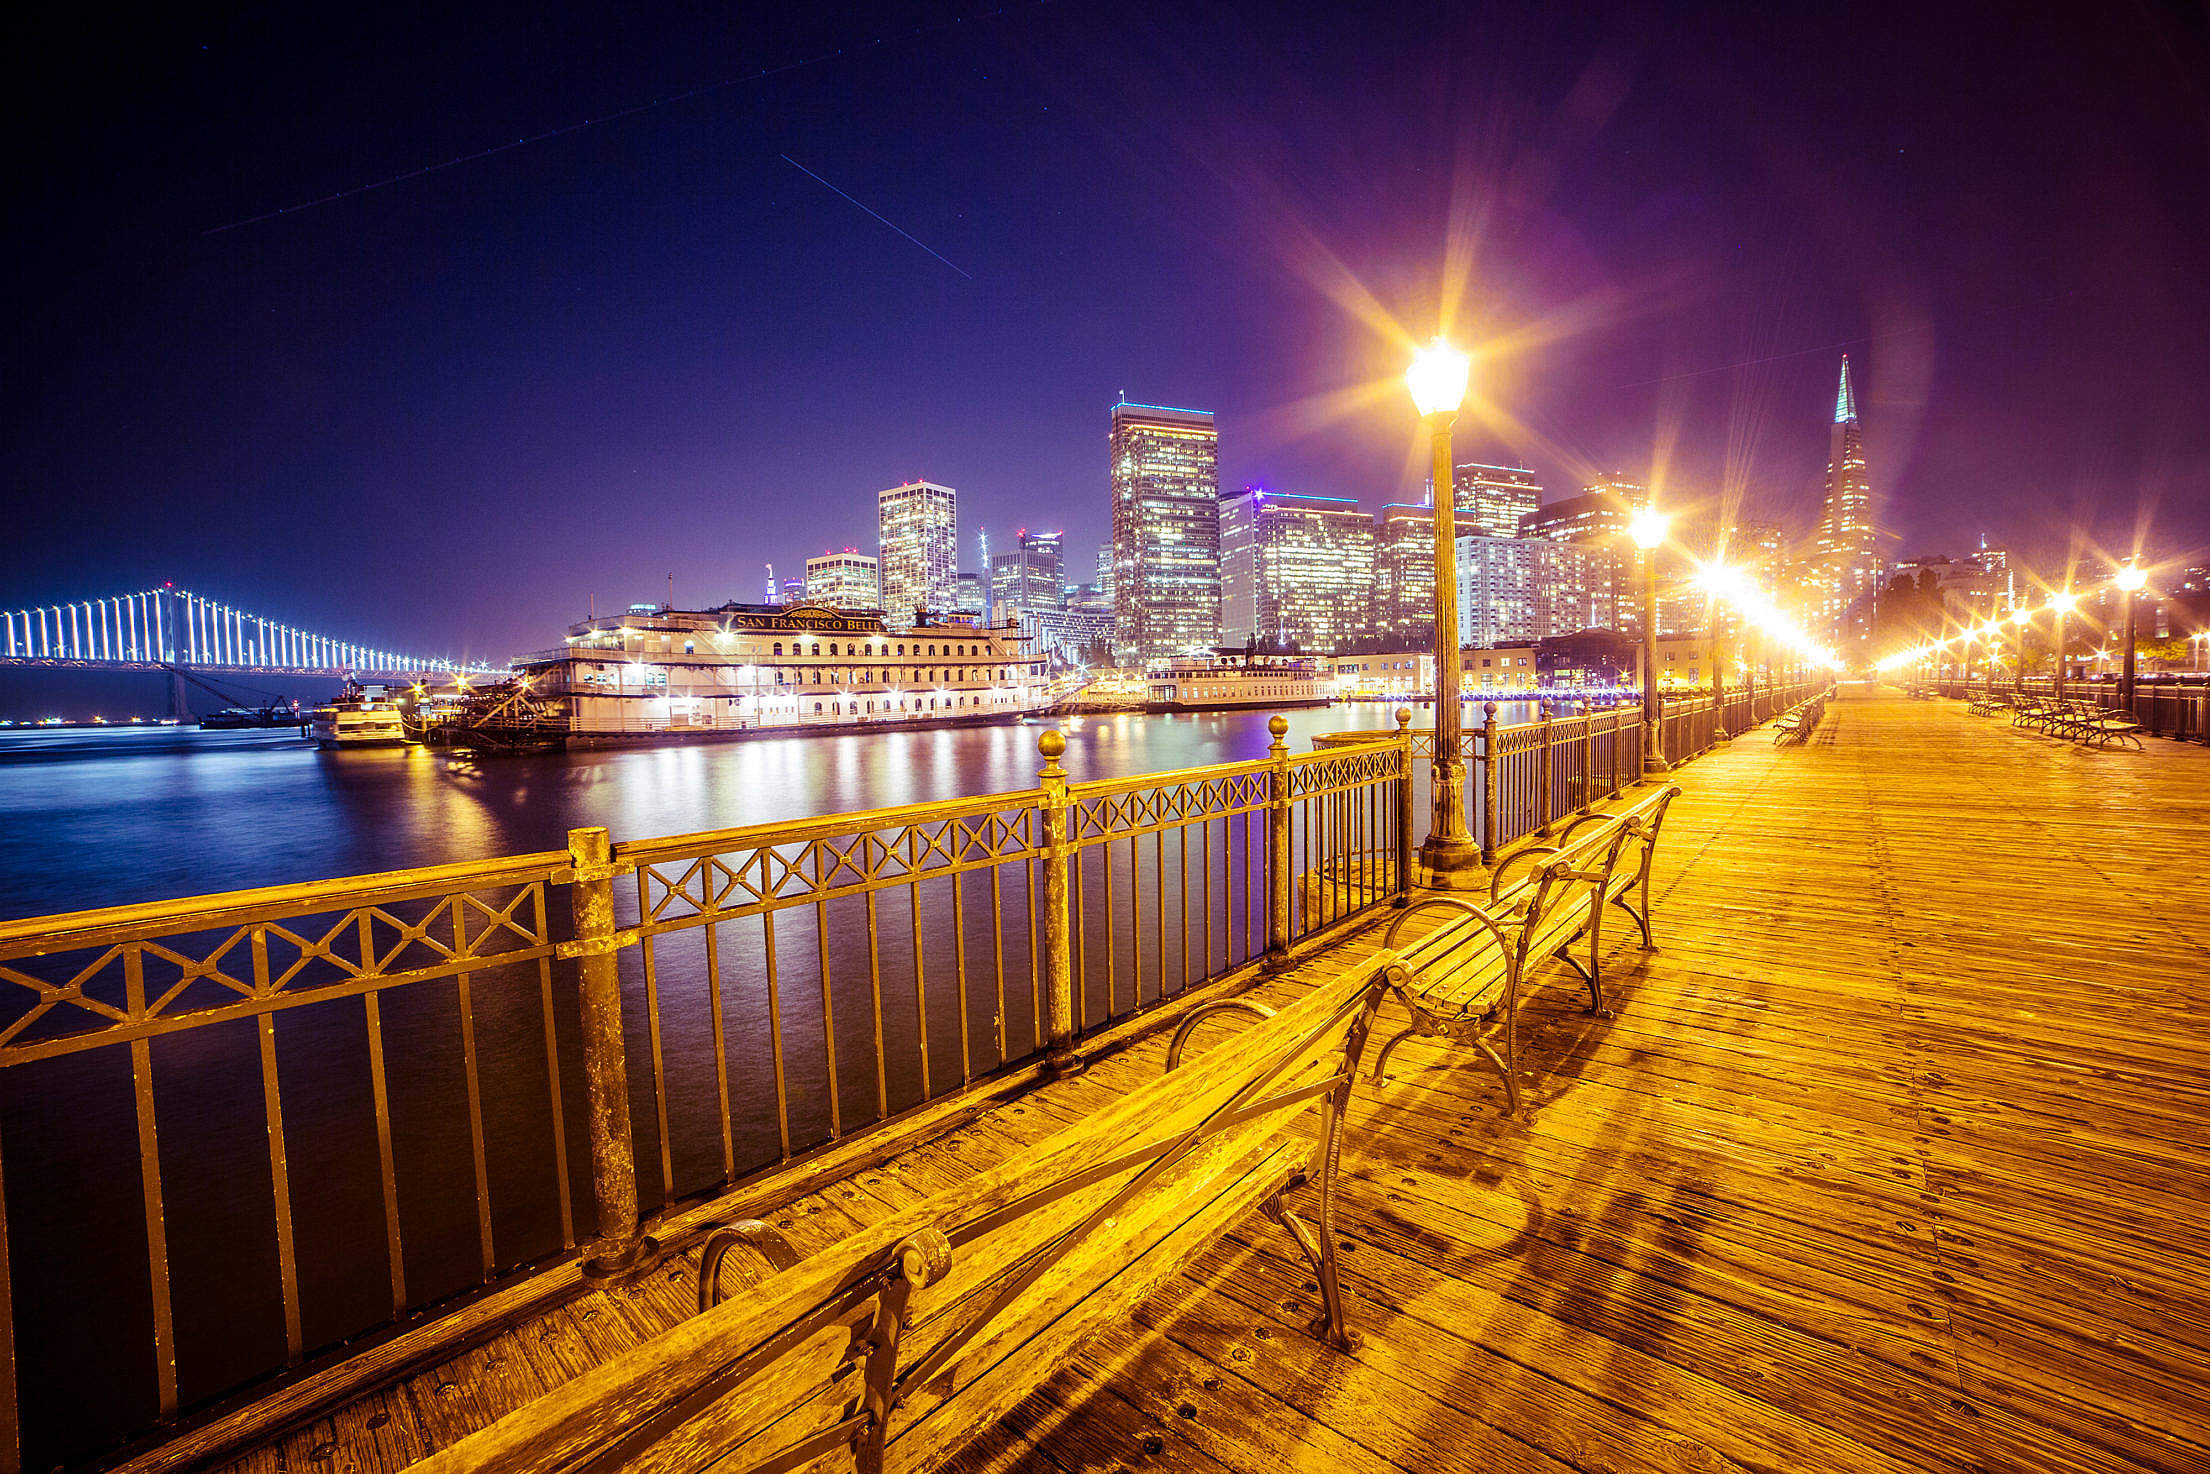 Old Pier and San Francisco Skyline with Bay Bridge at Night Free Stock Photo